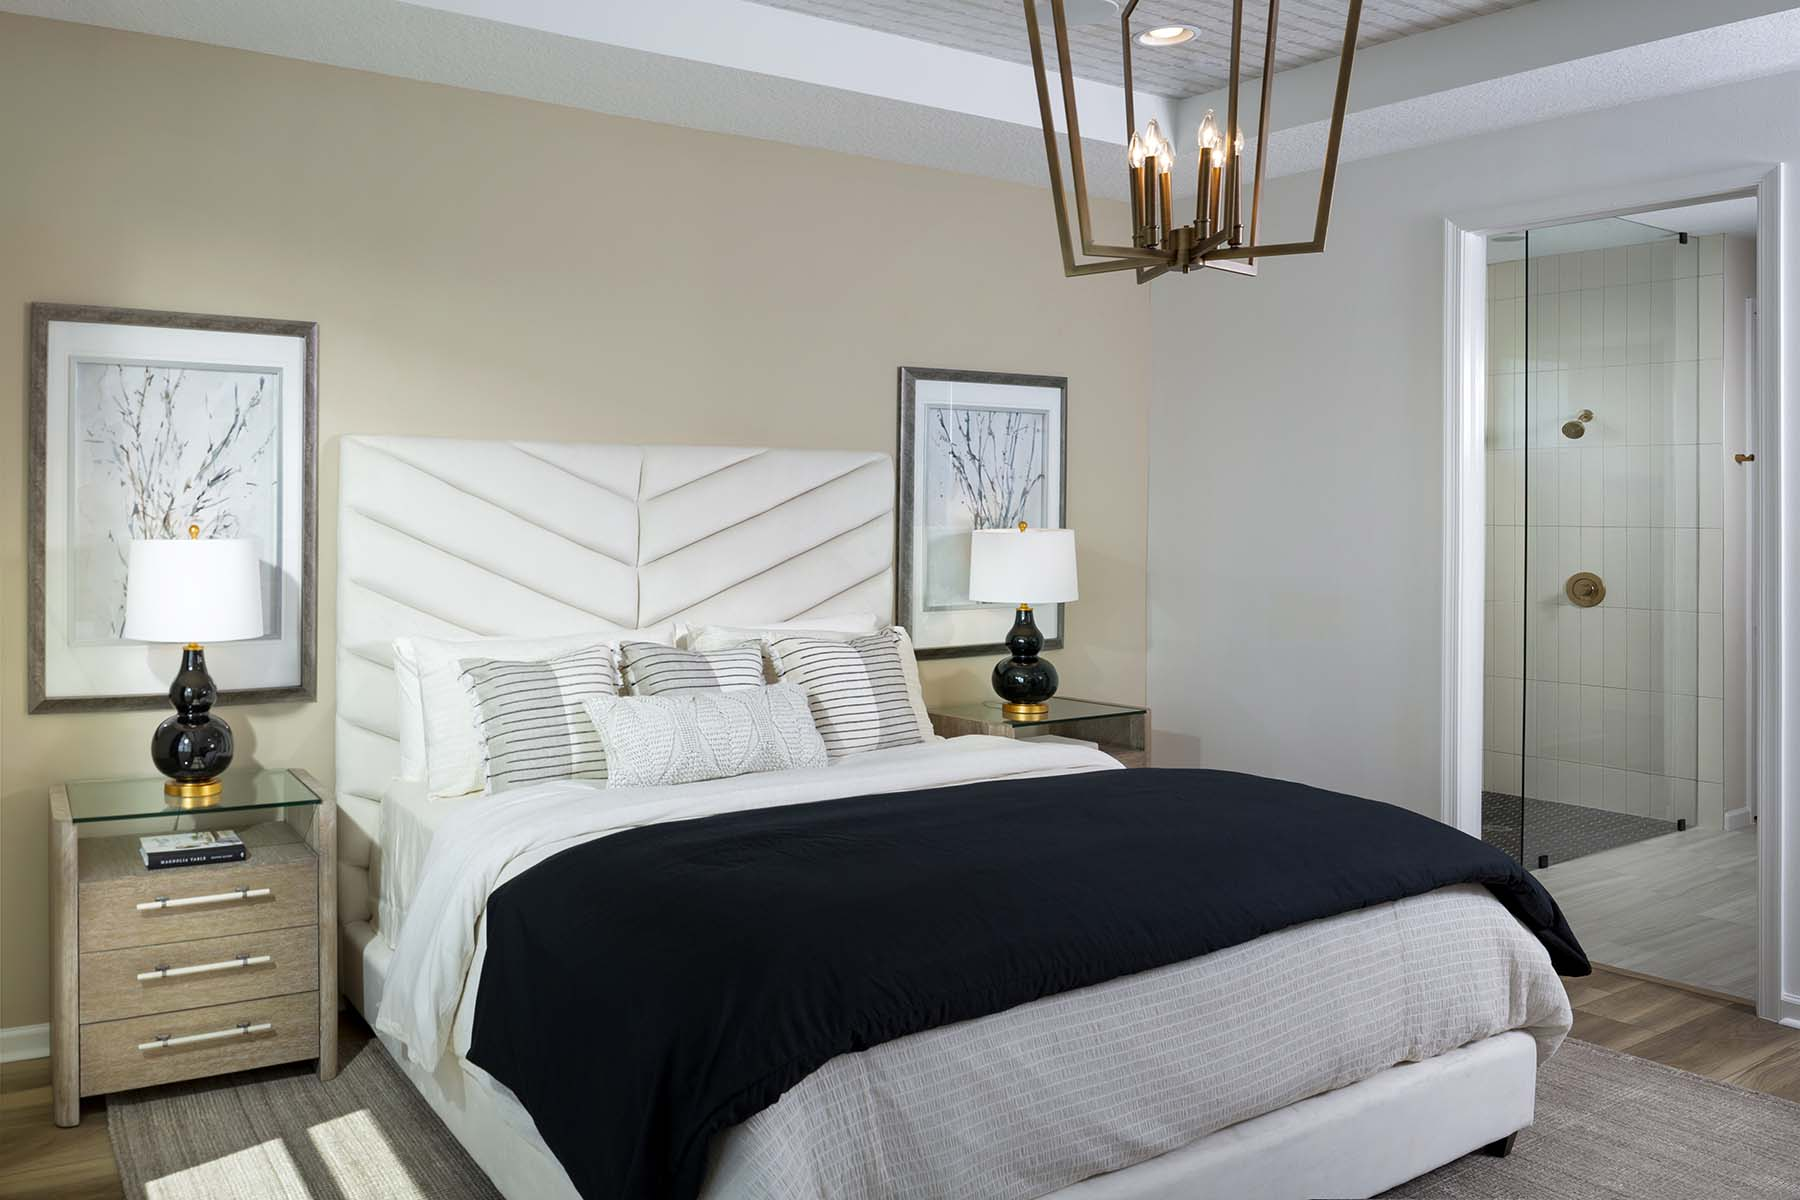 Dahlia Plan Bedroom at Tradition - Manderlie in Port St. Lucie Florida by Mattamy Homes